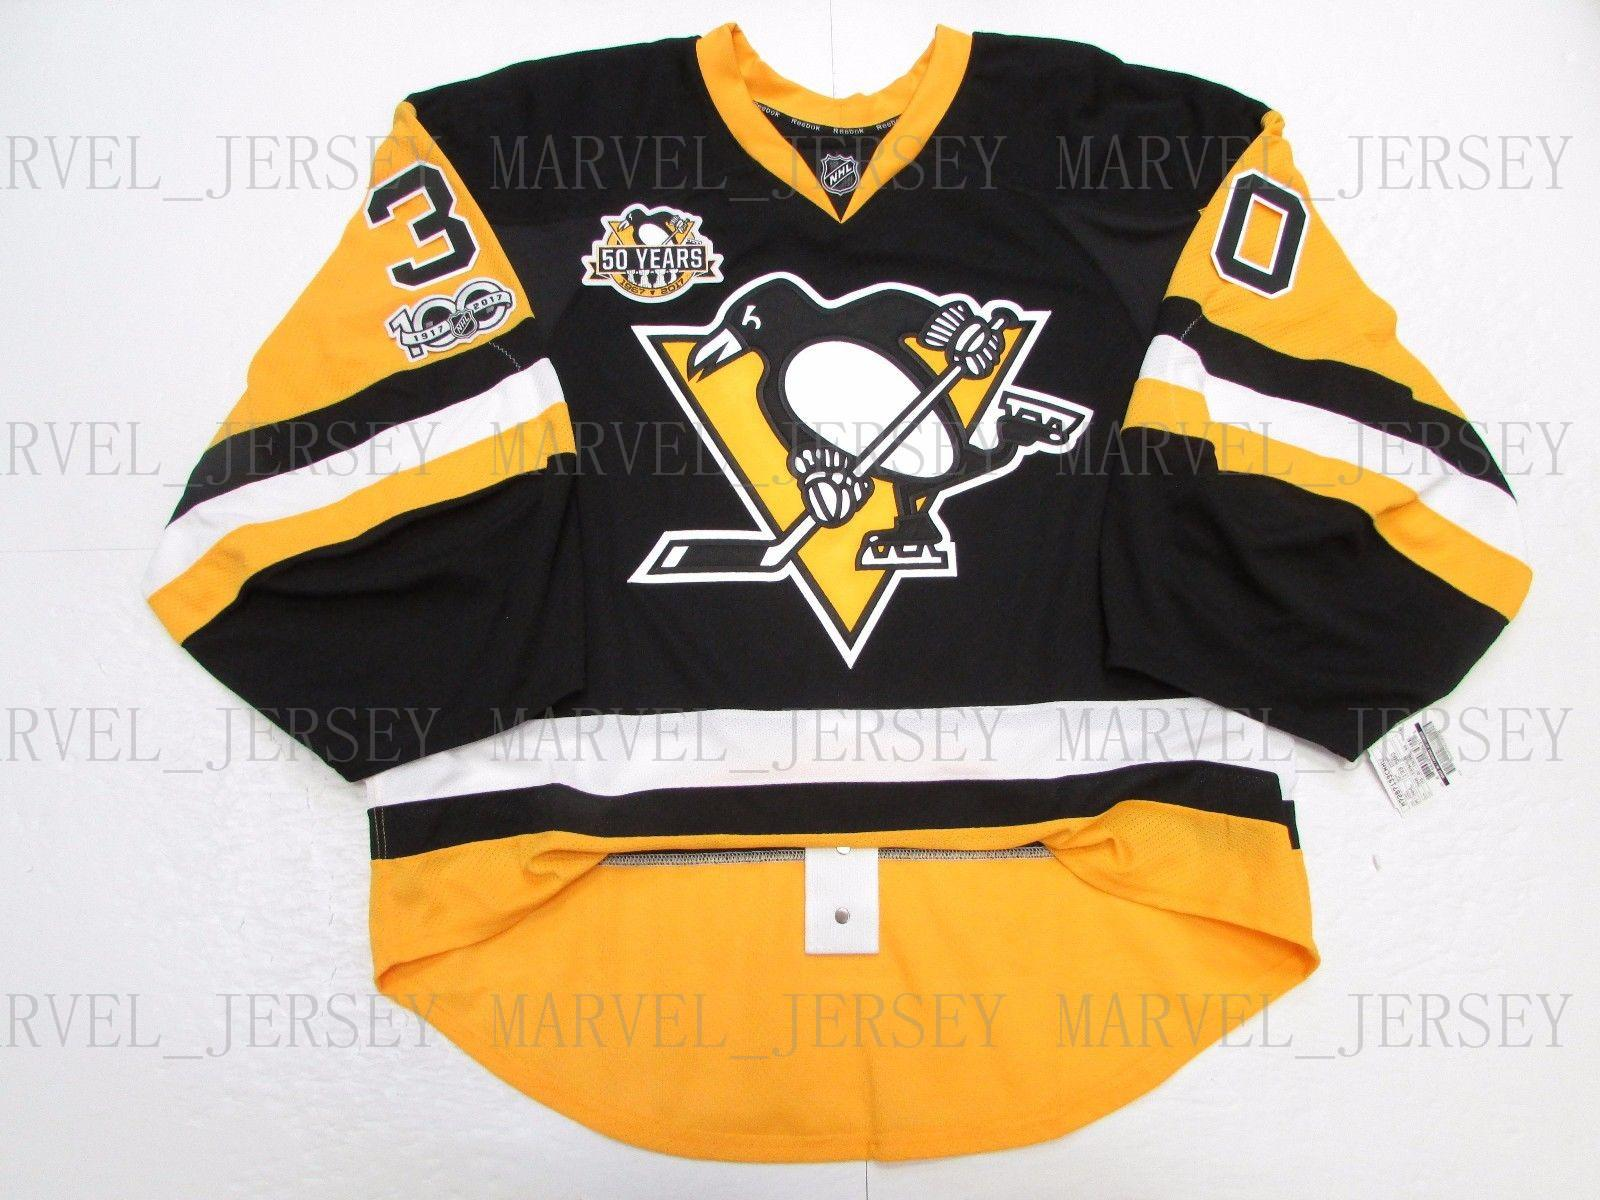 e95c37e60 2019 Cheap Custom MURRAY PITTSBURGH PENGUINS 100 ANNIVERSARY JERSEY GOALIE  CUT 58 Stitch Add Any Number Any Name Mens Hockey Jersey From  Marvel jersey